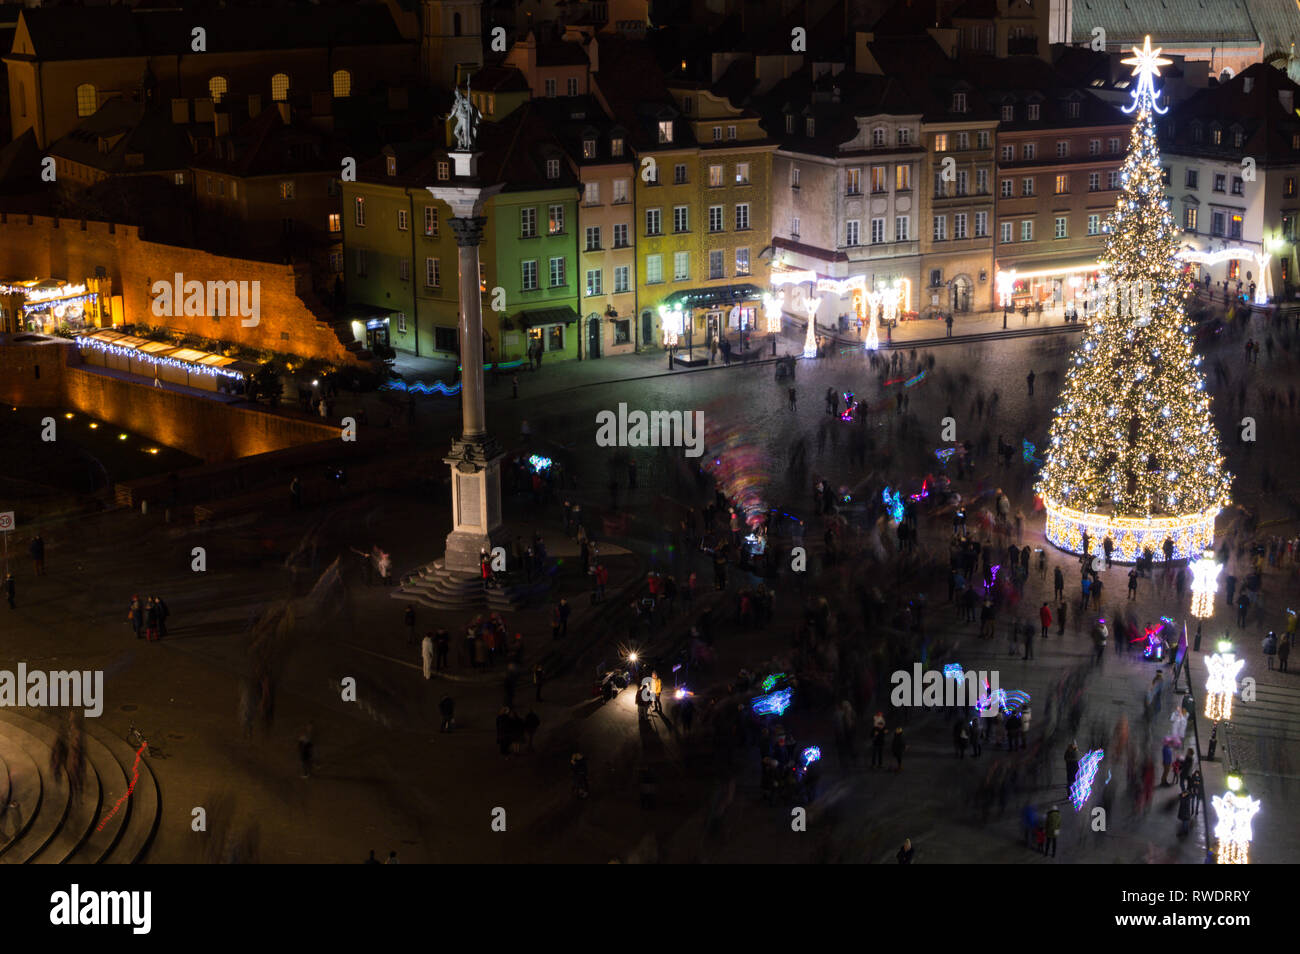 Christmas in Warsaw, Poland as Seen from Taras Widokowy Tower at Night - Stock Image